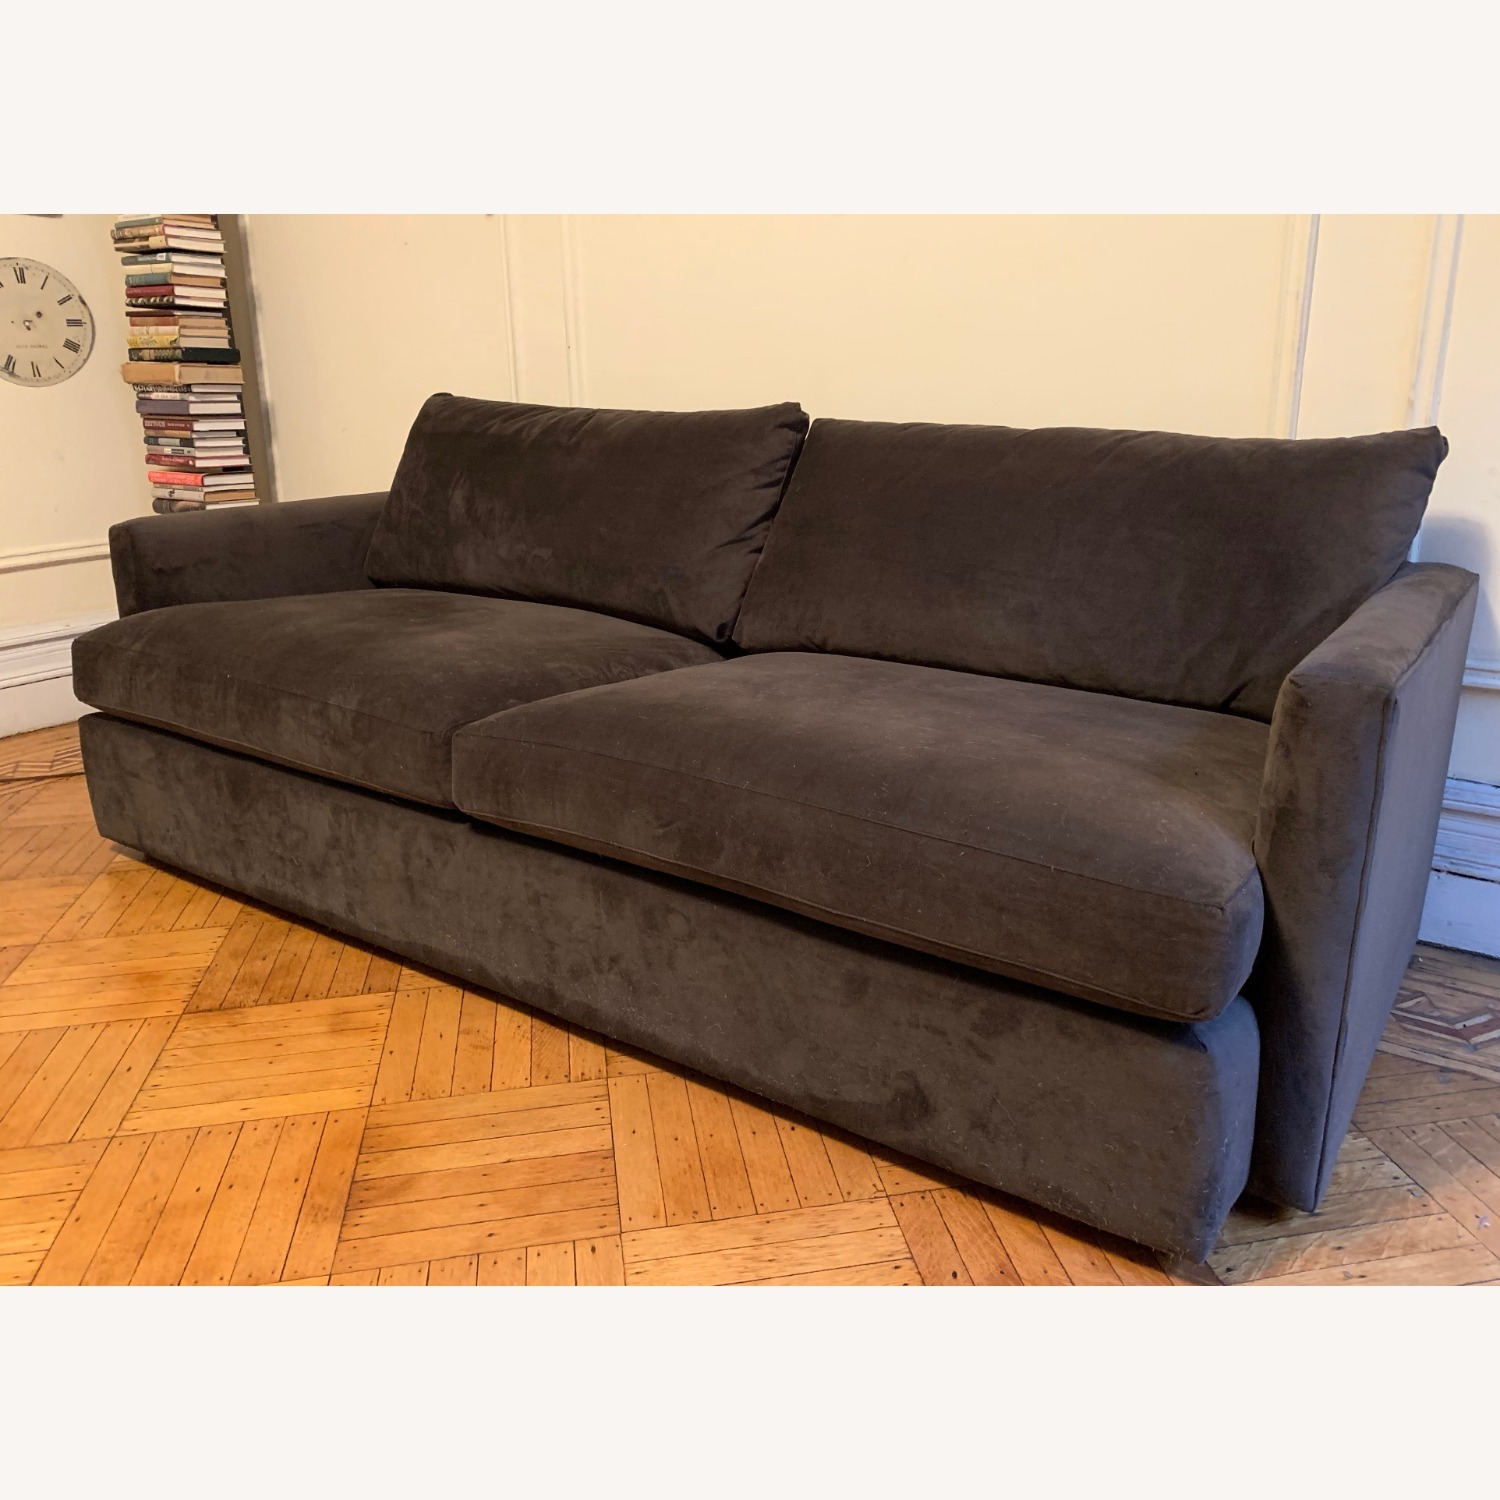 Crate and Barrel Chocolate Velvet Lounge Sofa - image-2